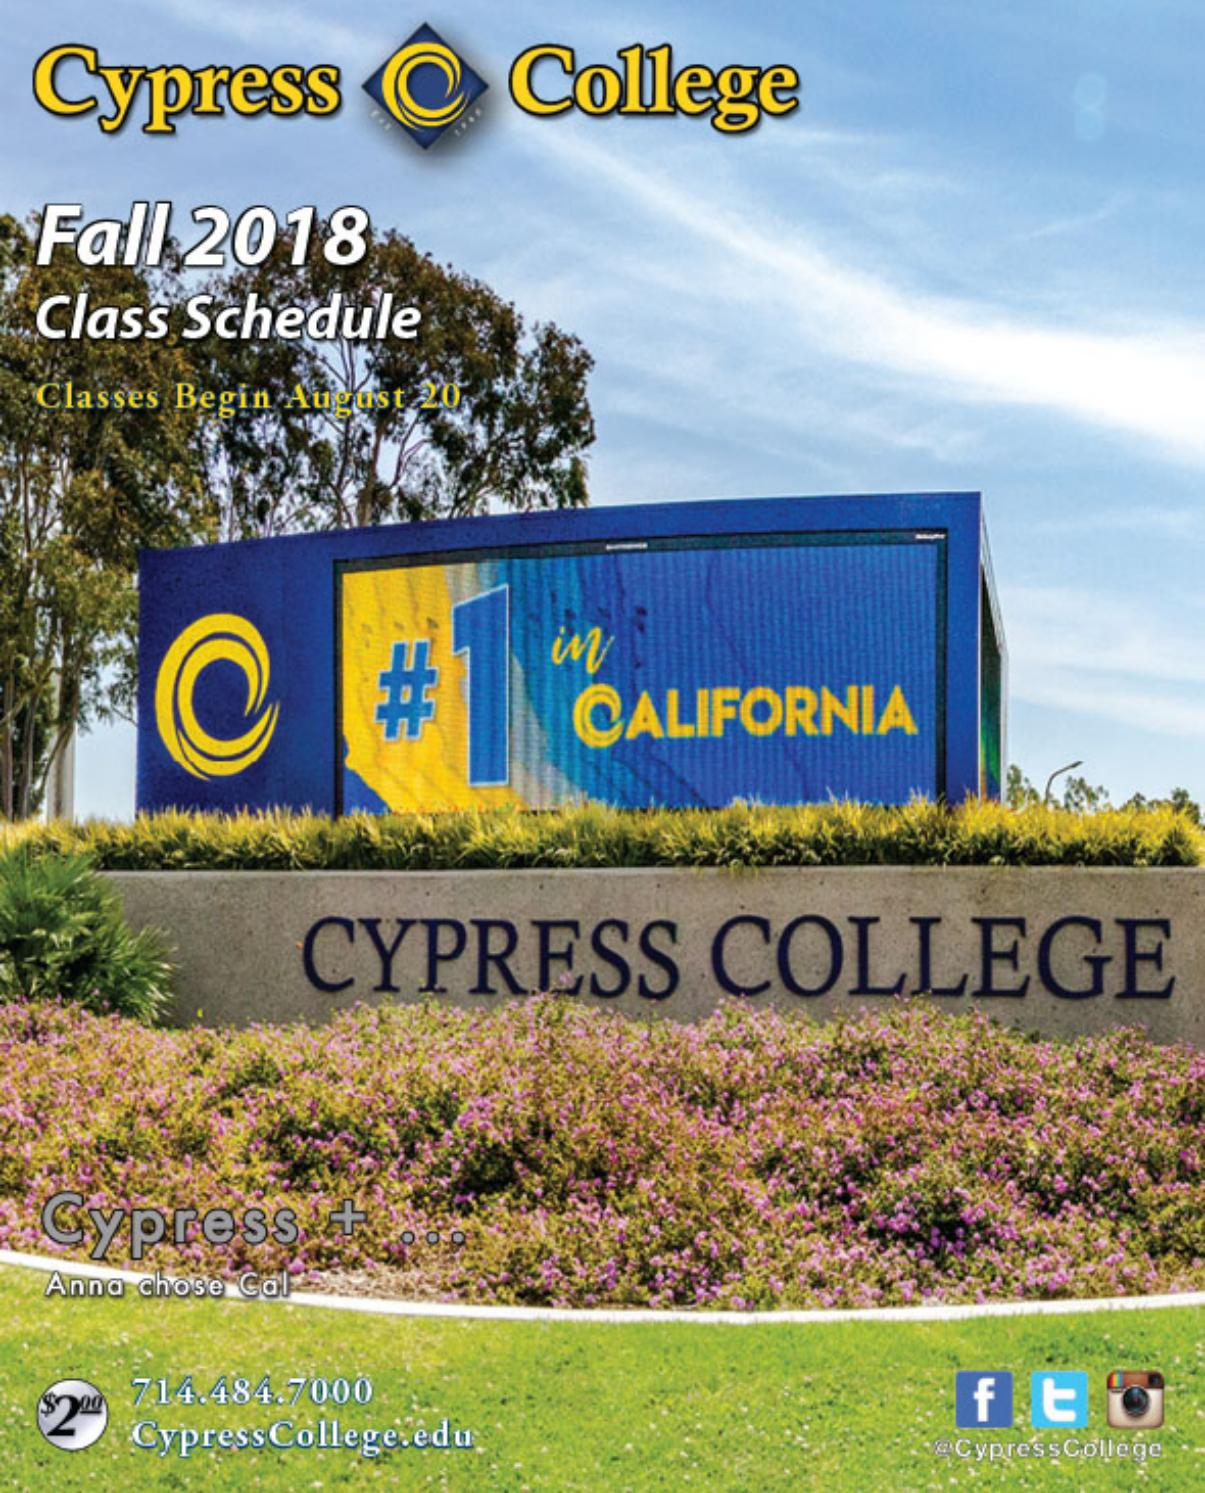 Cypress College Fall 2018 Class Schedule by Cypress College